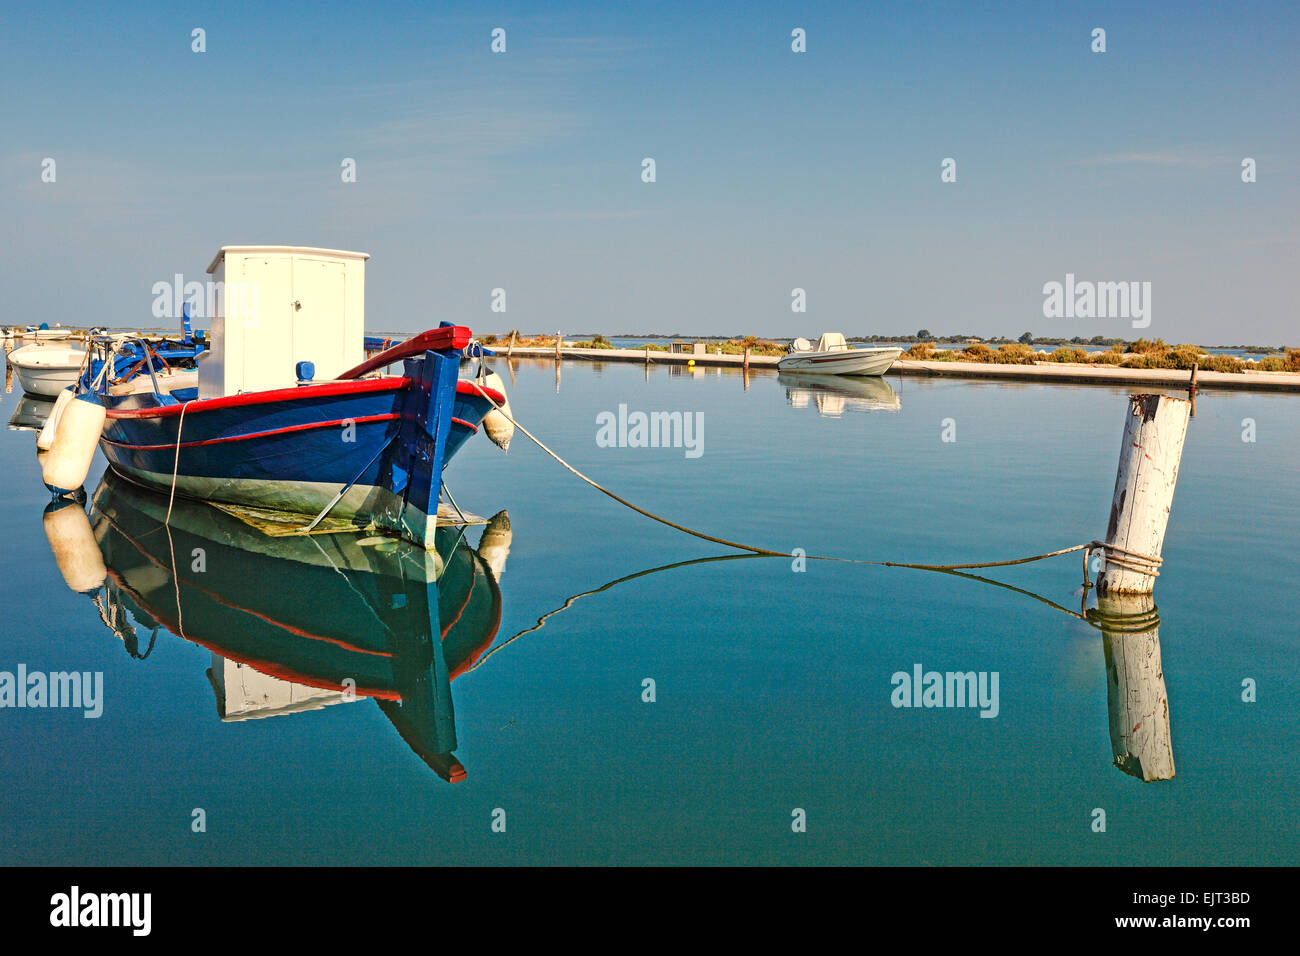 A fishing boat tied up in shallow waters in the city of Lefkada, Greece - Stock Image